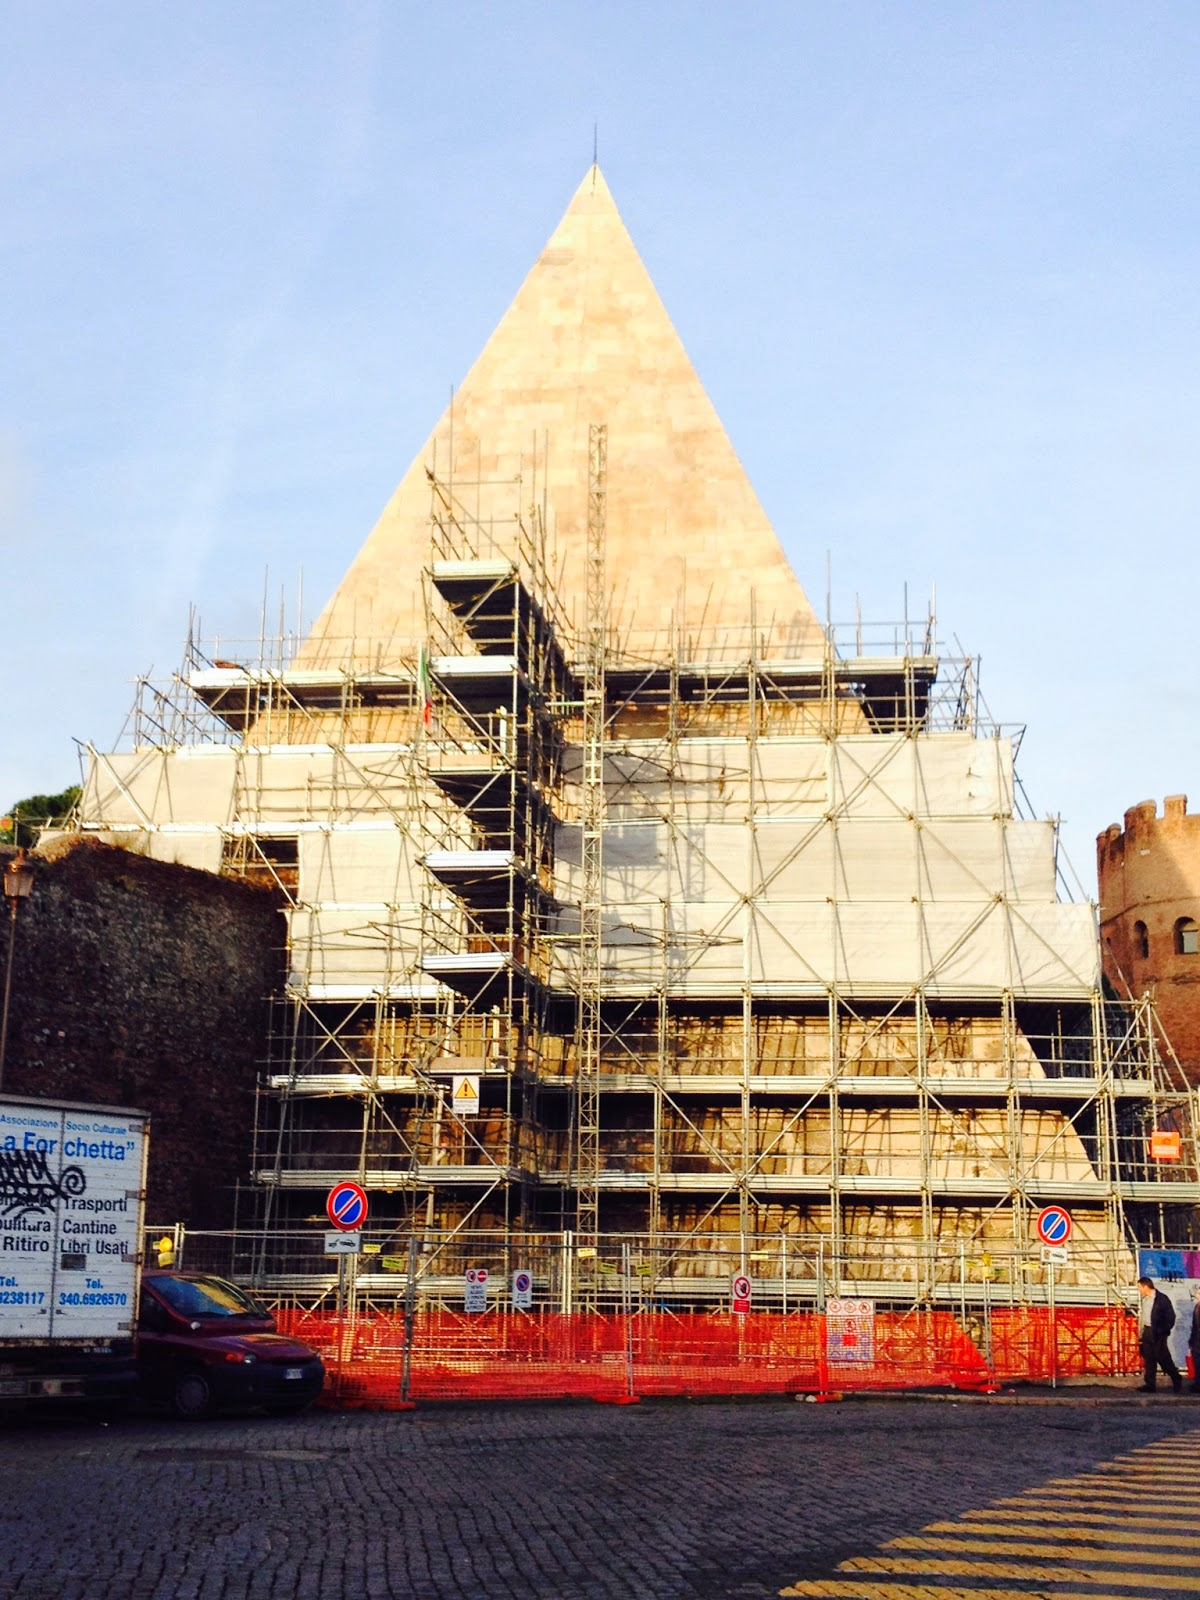 The Pyramid of Cestius during renovations. © Tiffany Parks